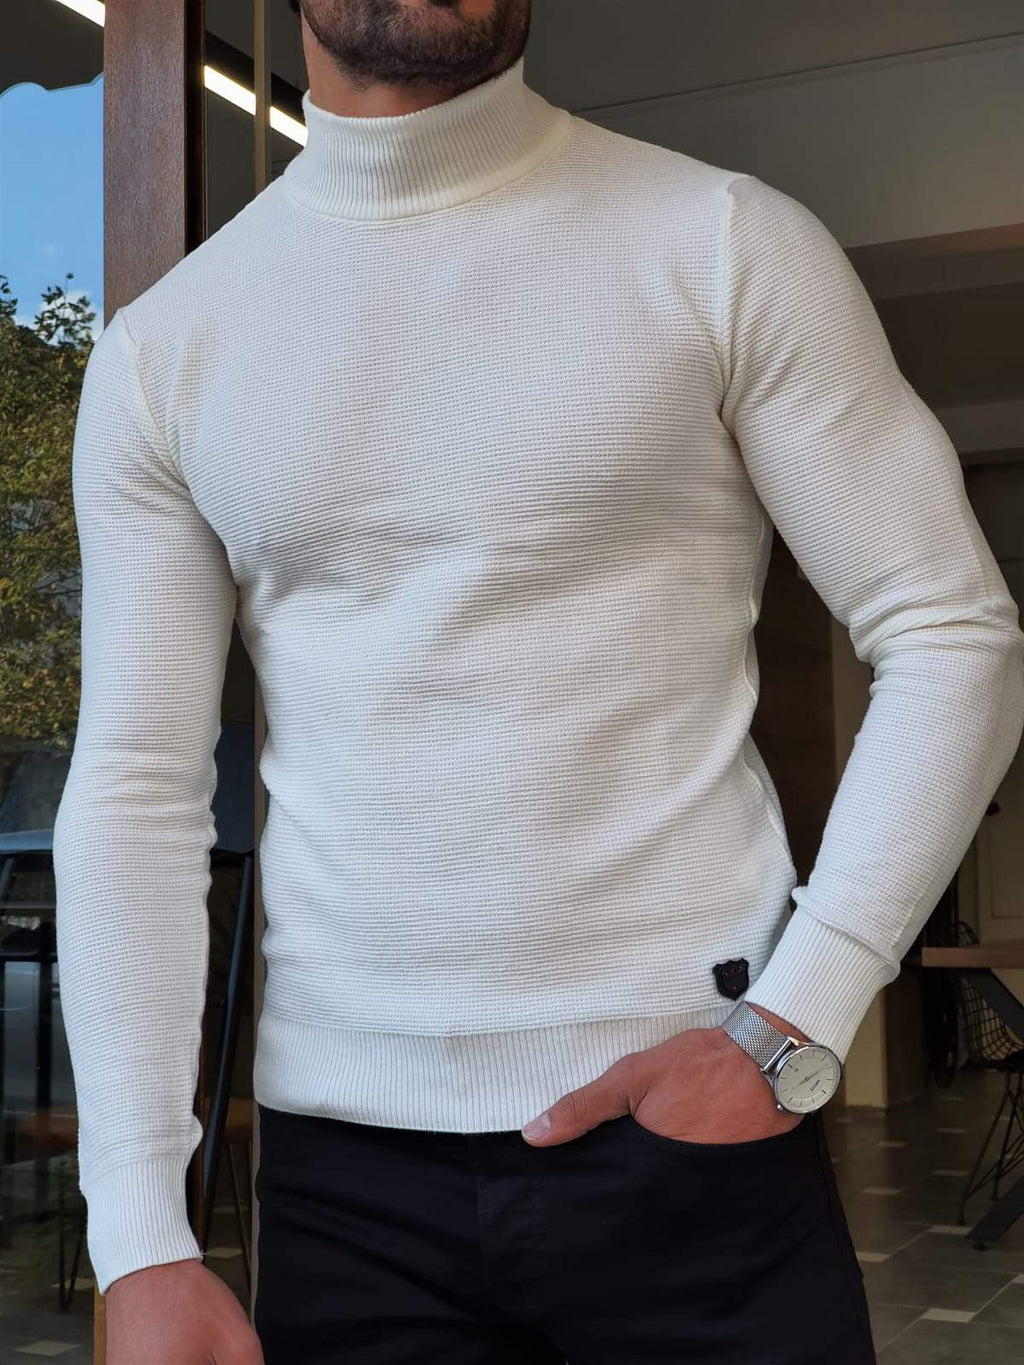 Elko White Slim Fit Mock Turtleneck Sweater